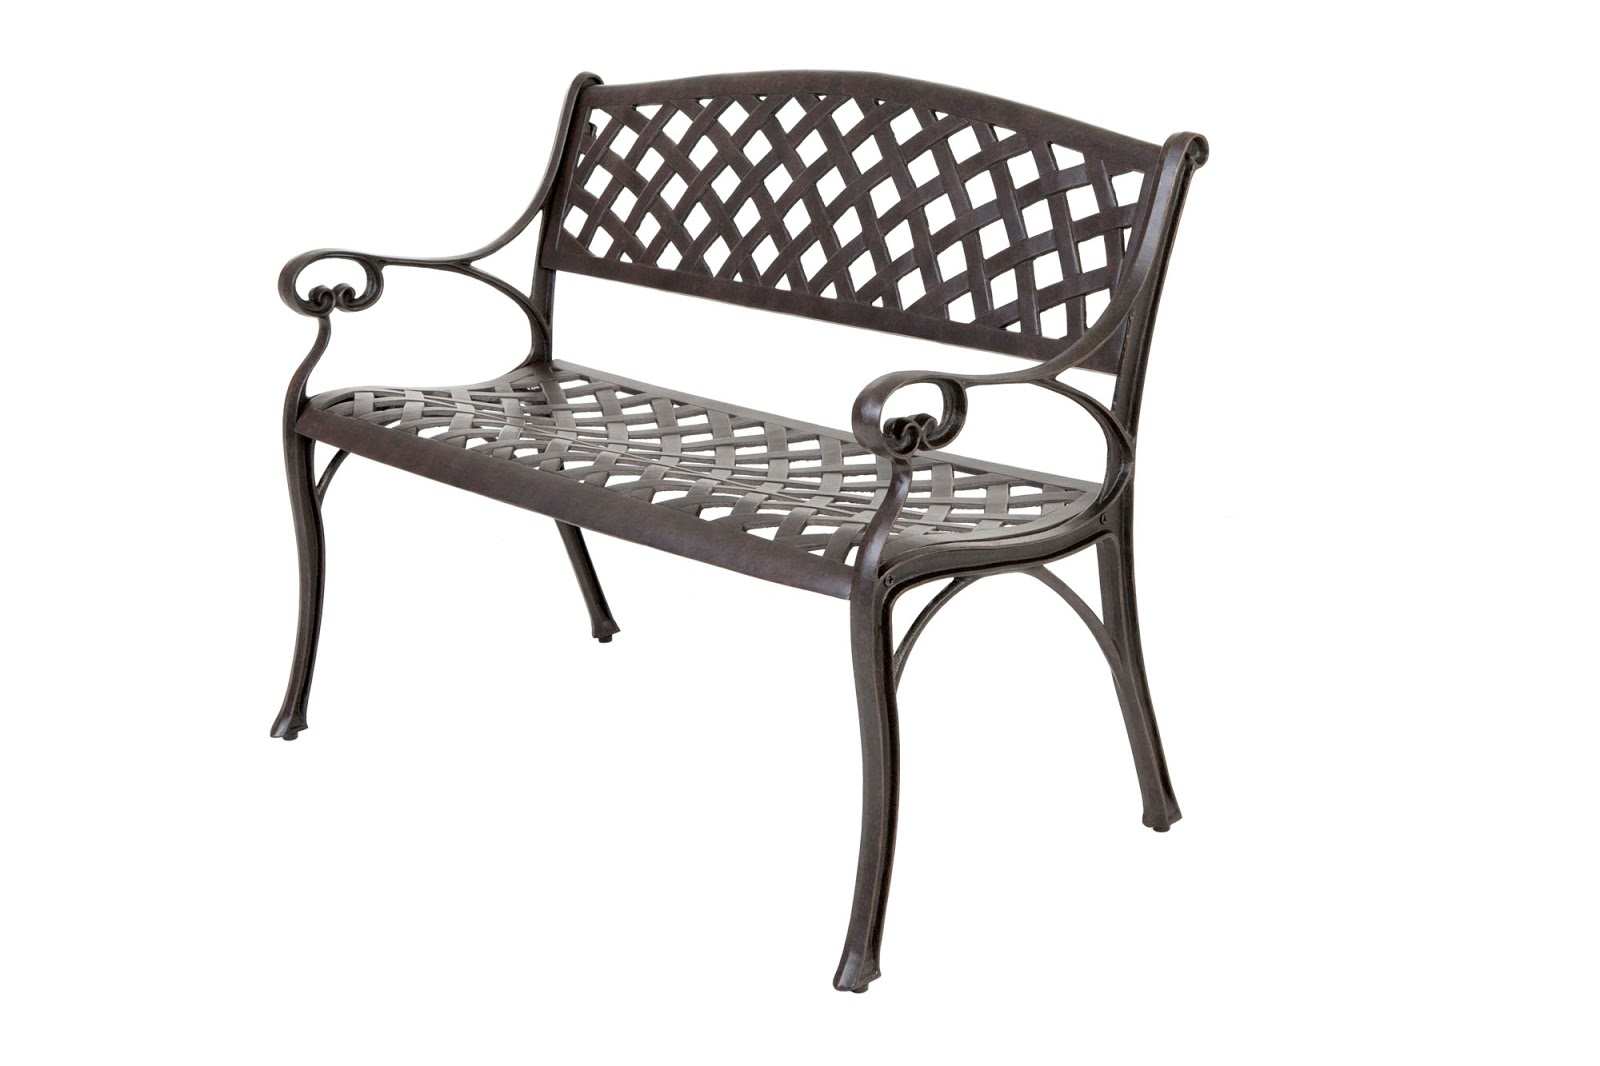 Outside Edge Garden Furniture Blog Free Cast Aluminium Garden Bistro Set Or Bench When Buying